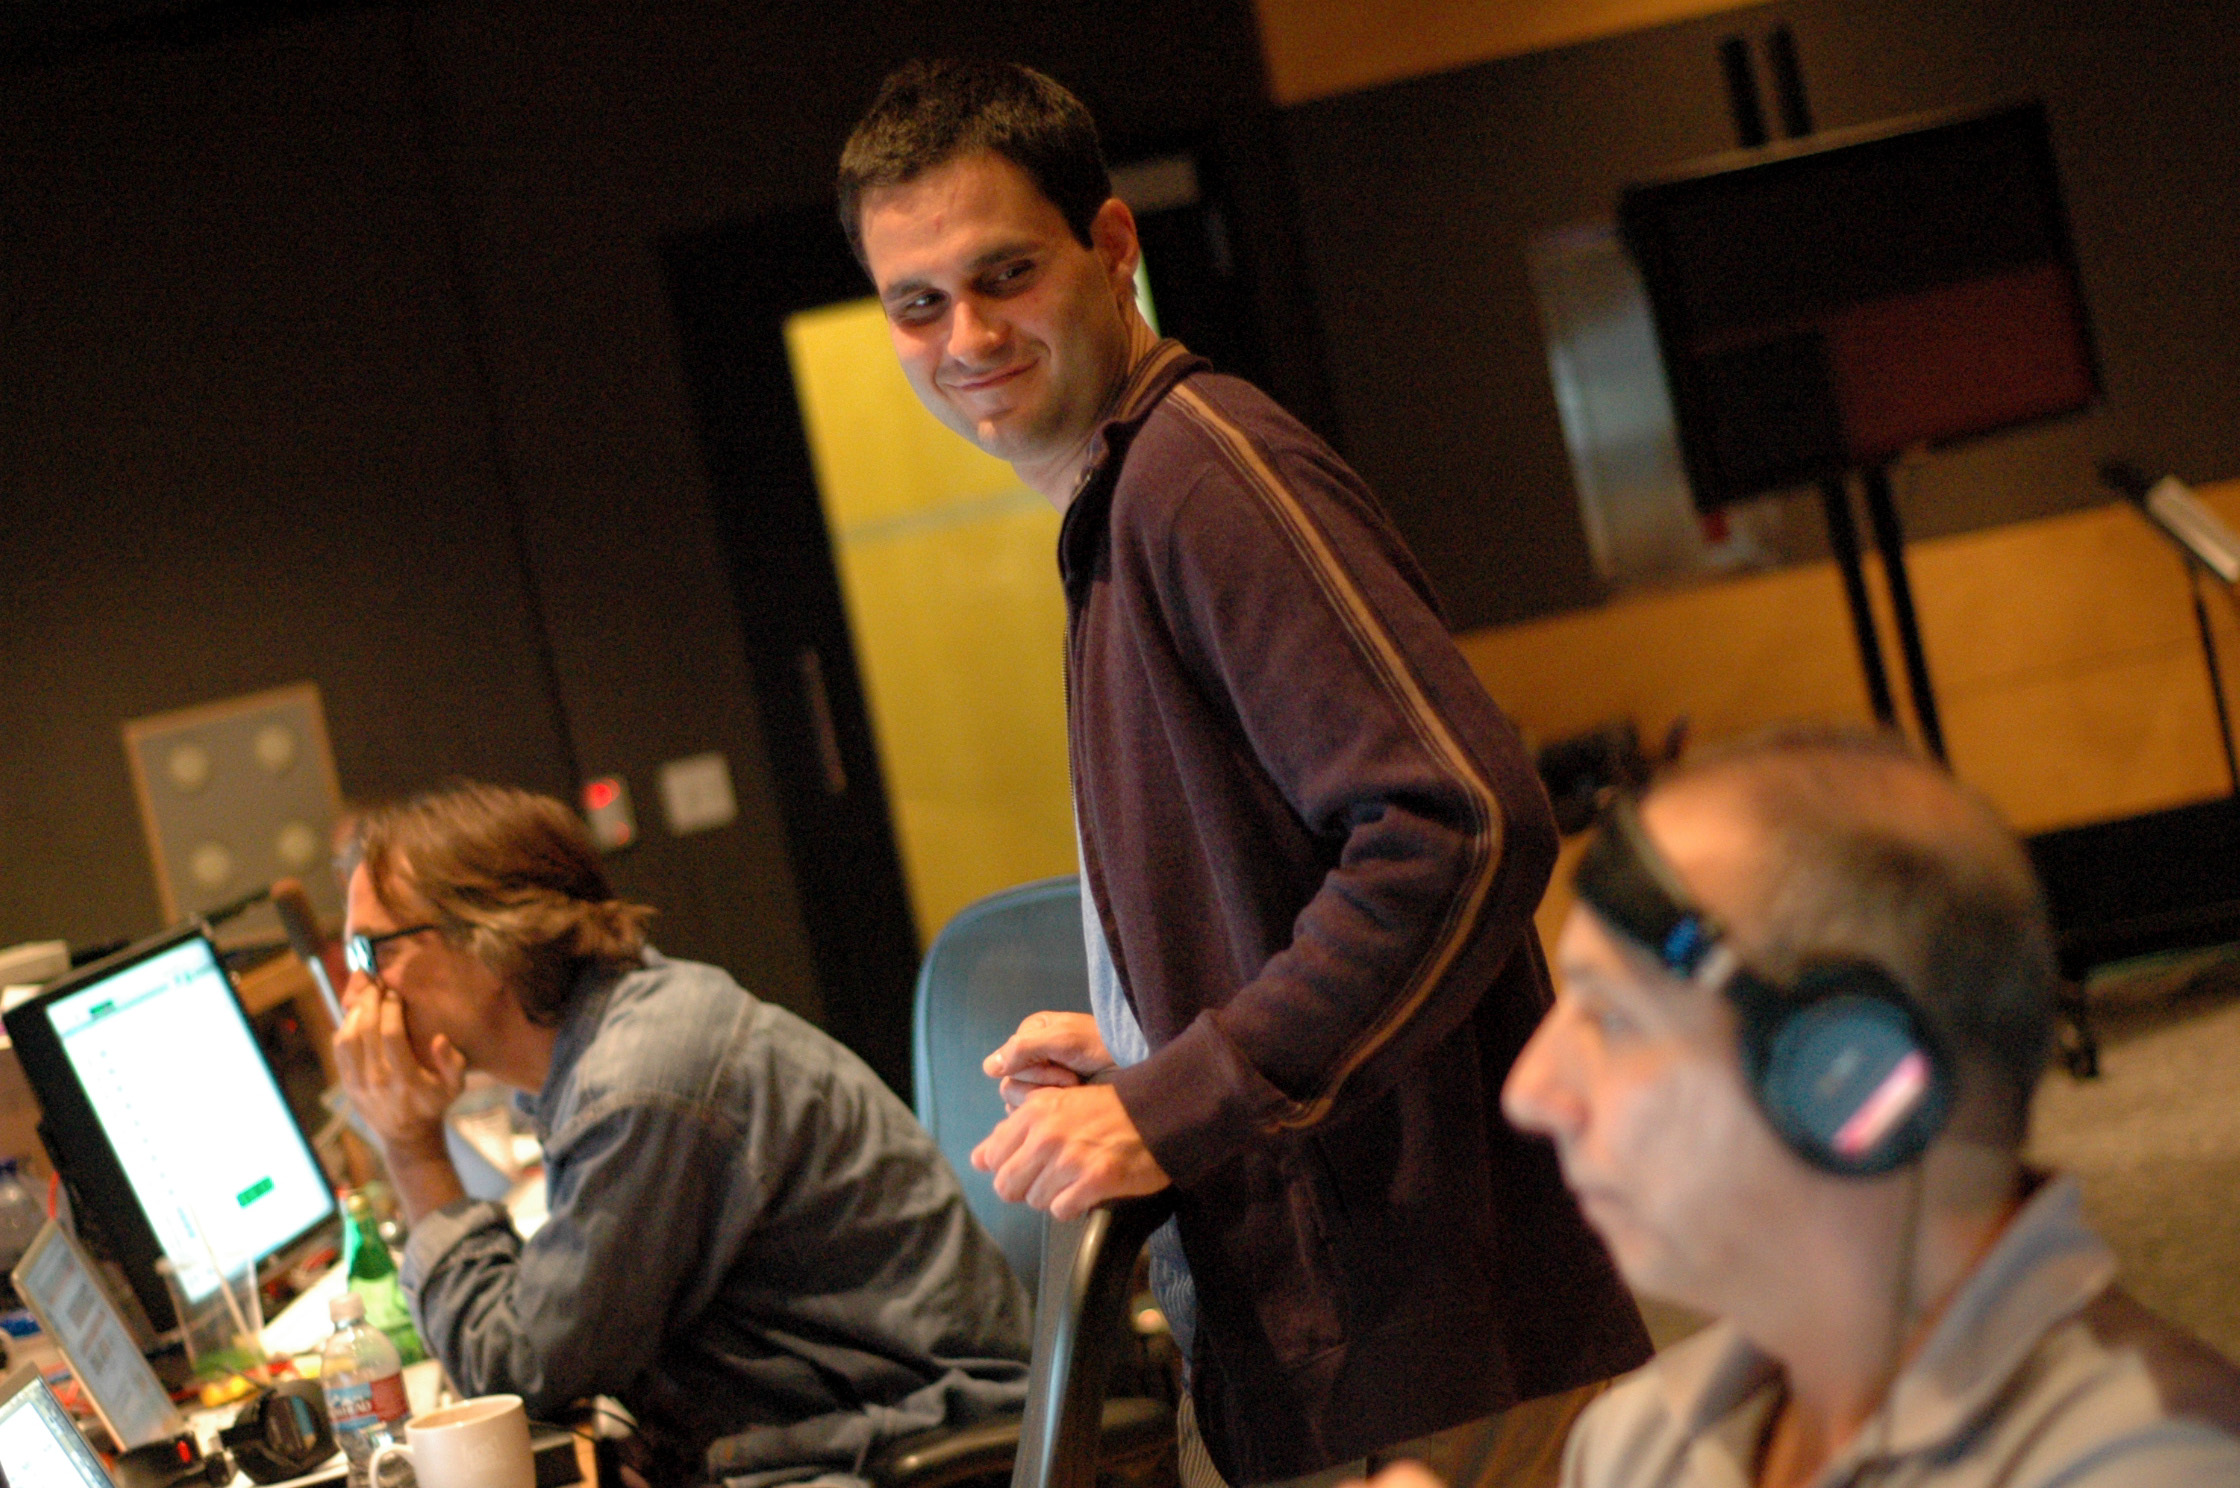 Noah Snyder at Wolfman Scoring Session (2009)